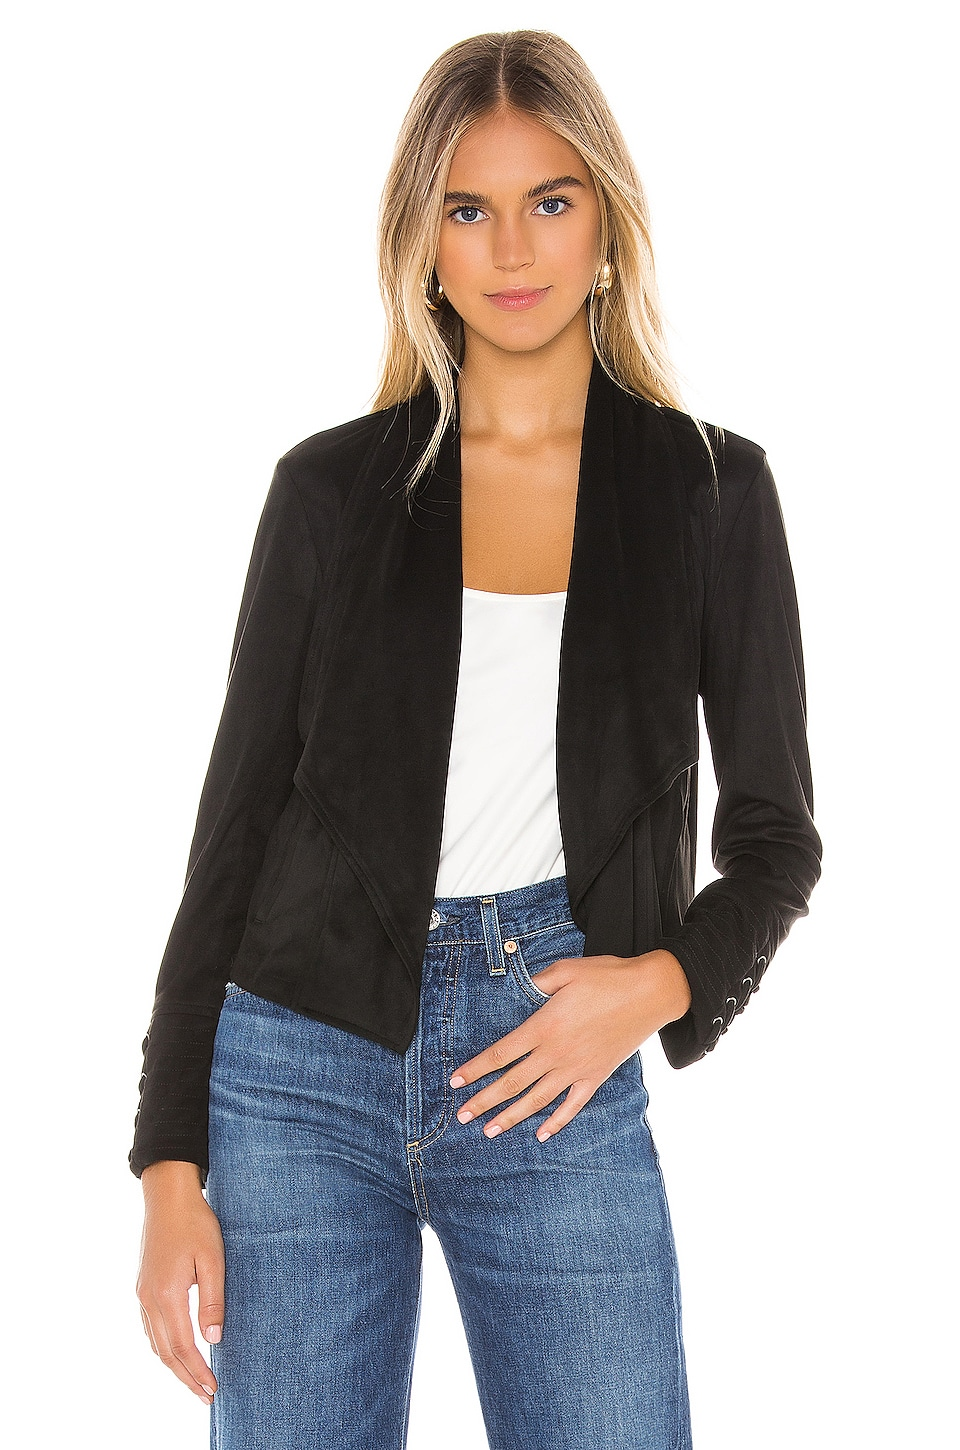 BB Dakota JACK by BB Dakota Flip The Stitch Faux Suede Jacket in Black